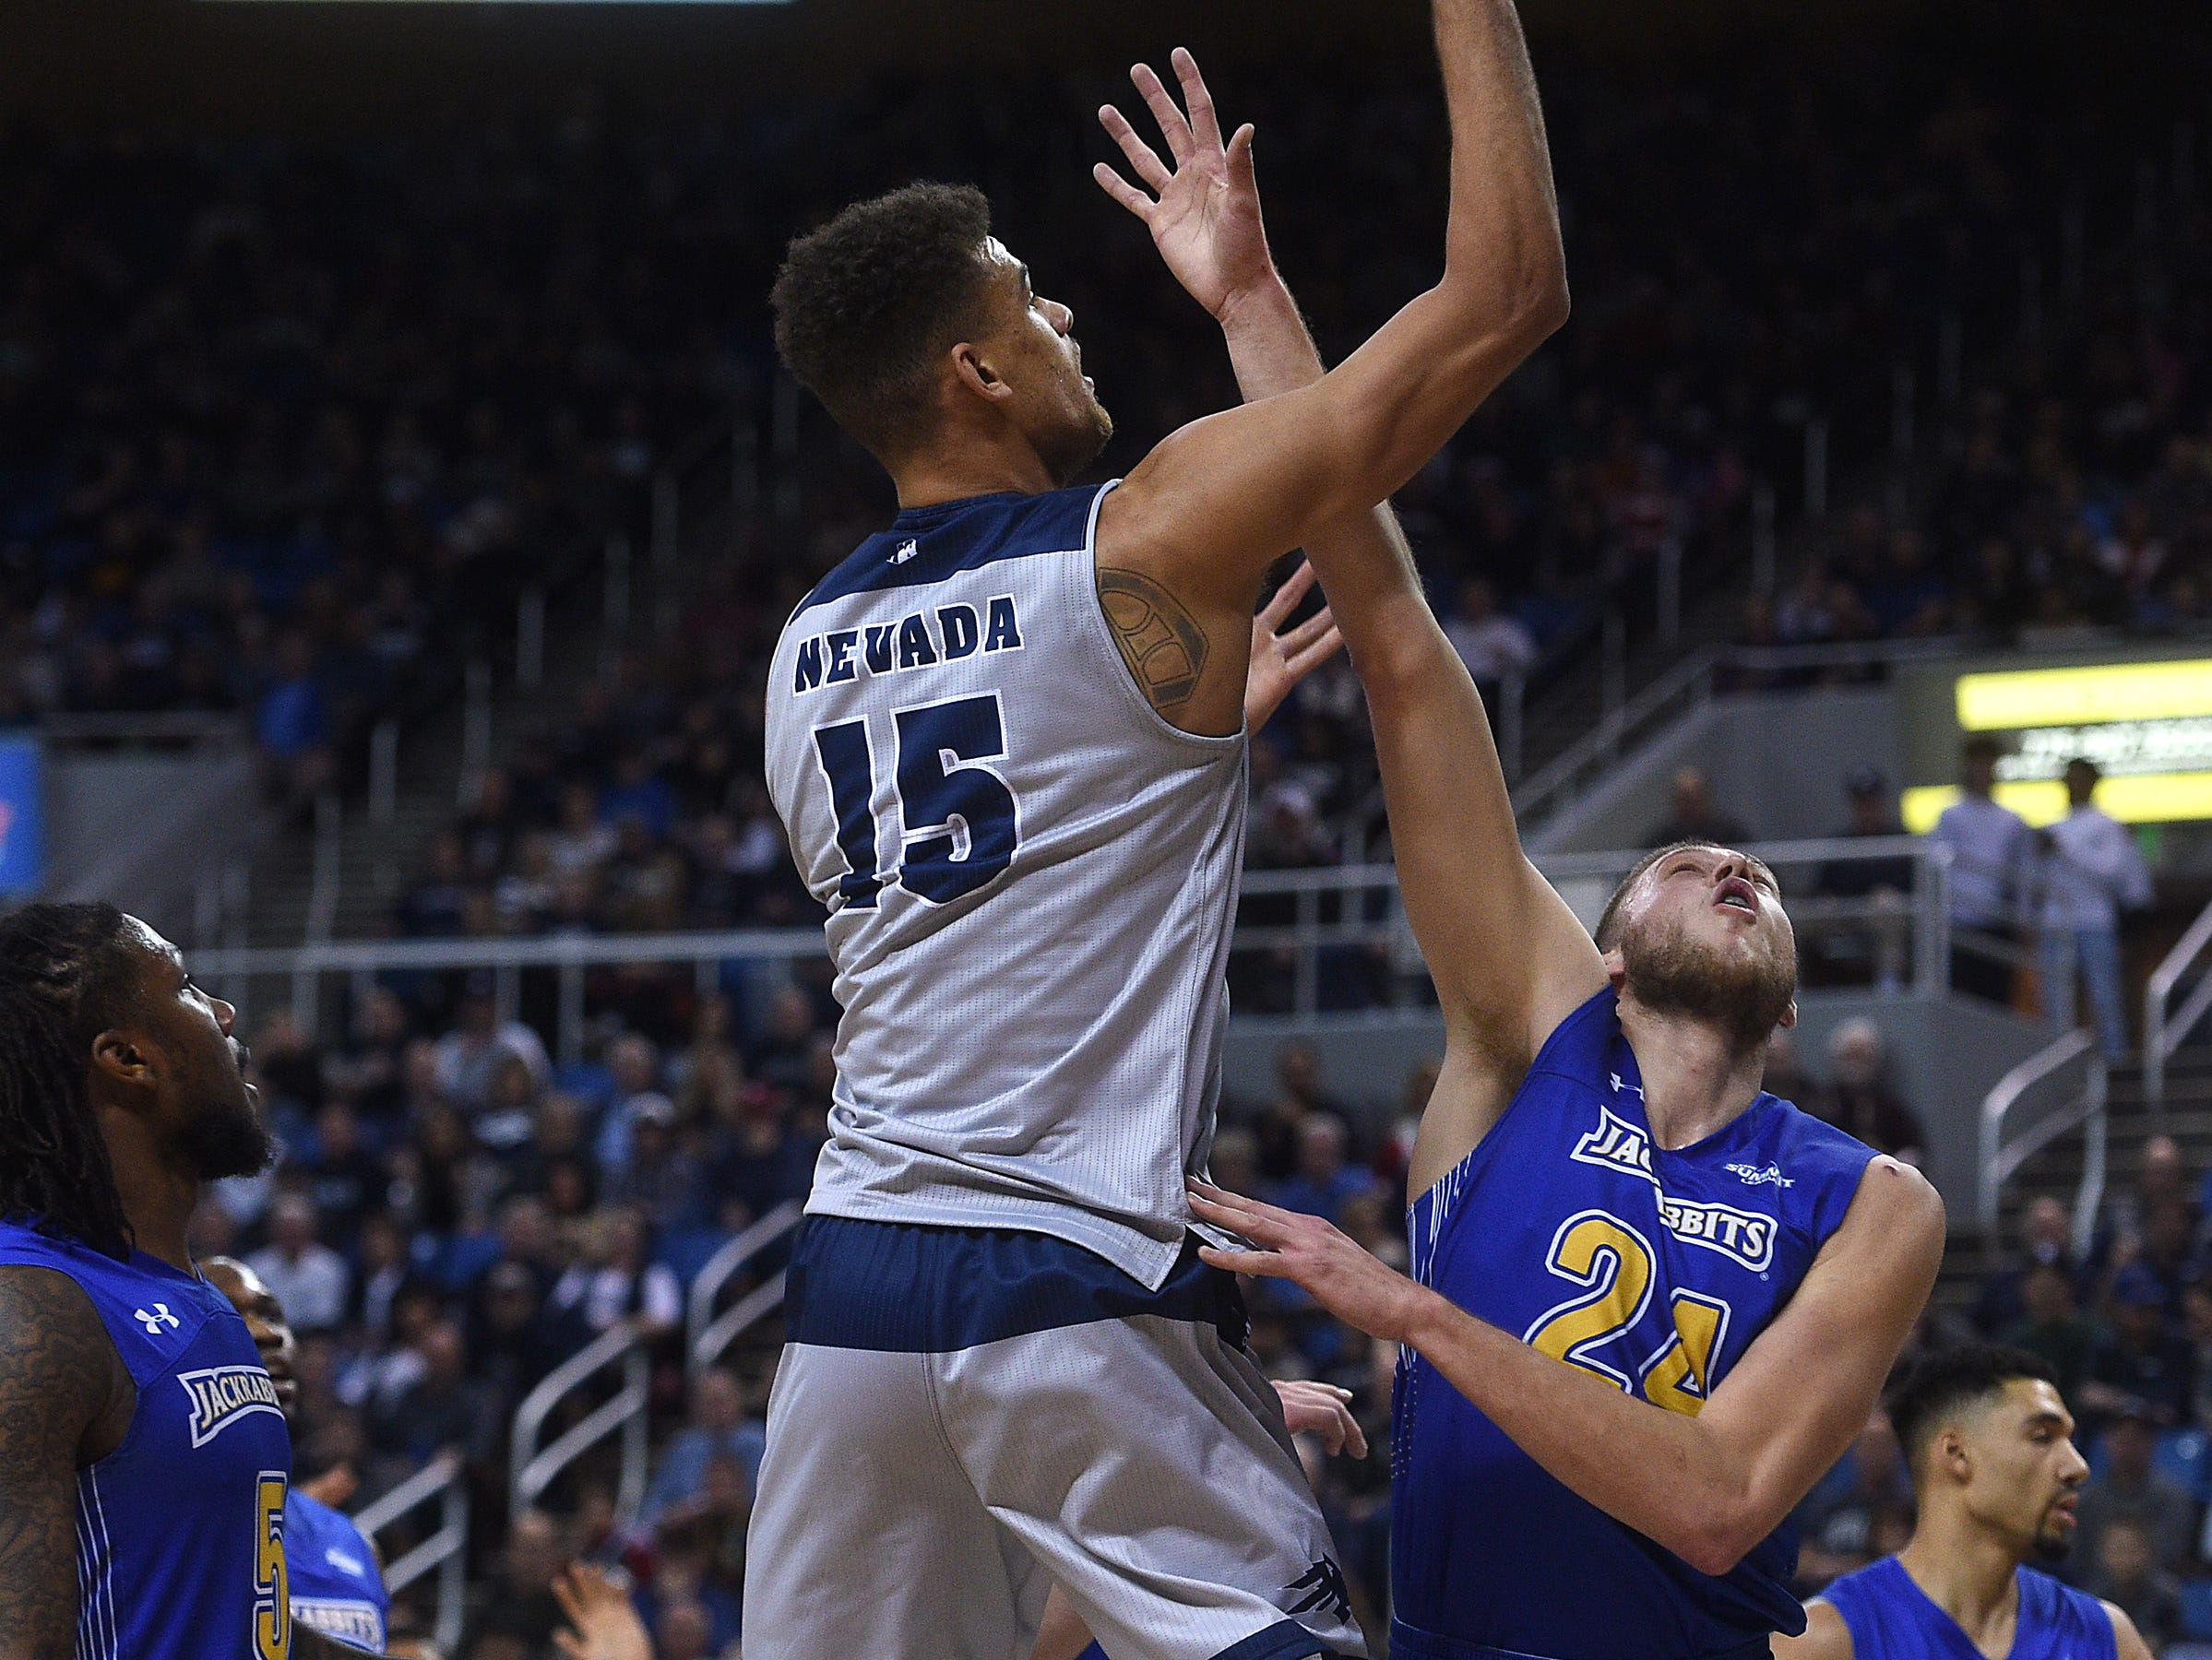 Nevada's Trey Porter (15) shoots while taking on South Dakota State during their basketball game at Lawlor Events Center in Reno on Dec. 15, 2018.